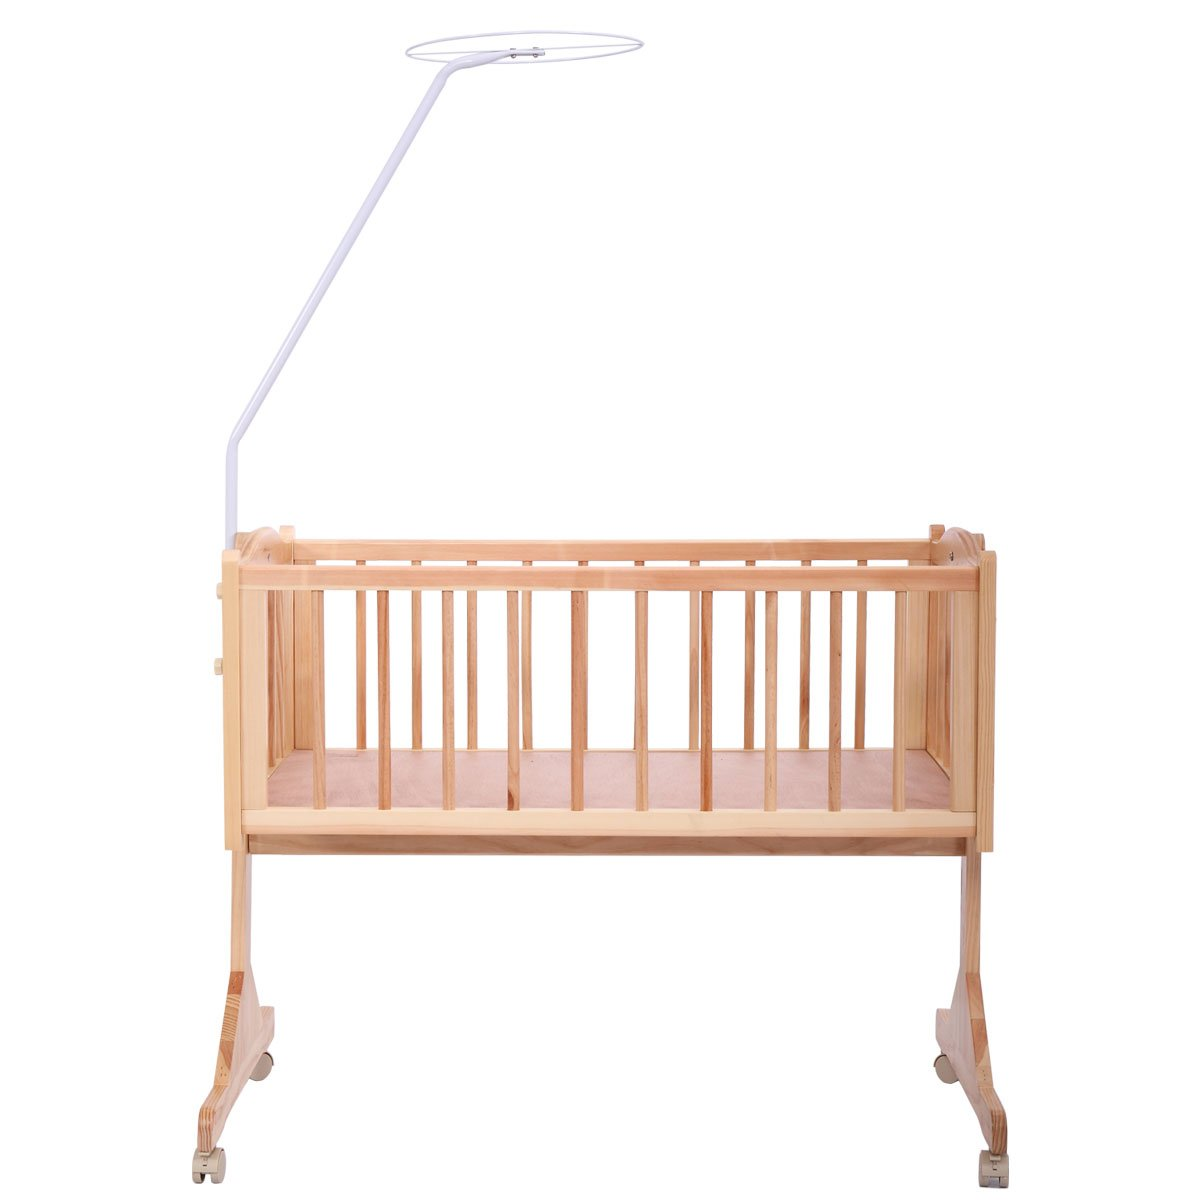 JAXPETY Wood Baby Cradle Rocking Crib Bassinet Bed Sleeper Portable Nursery Blue by JAXPETY (Image #6)